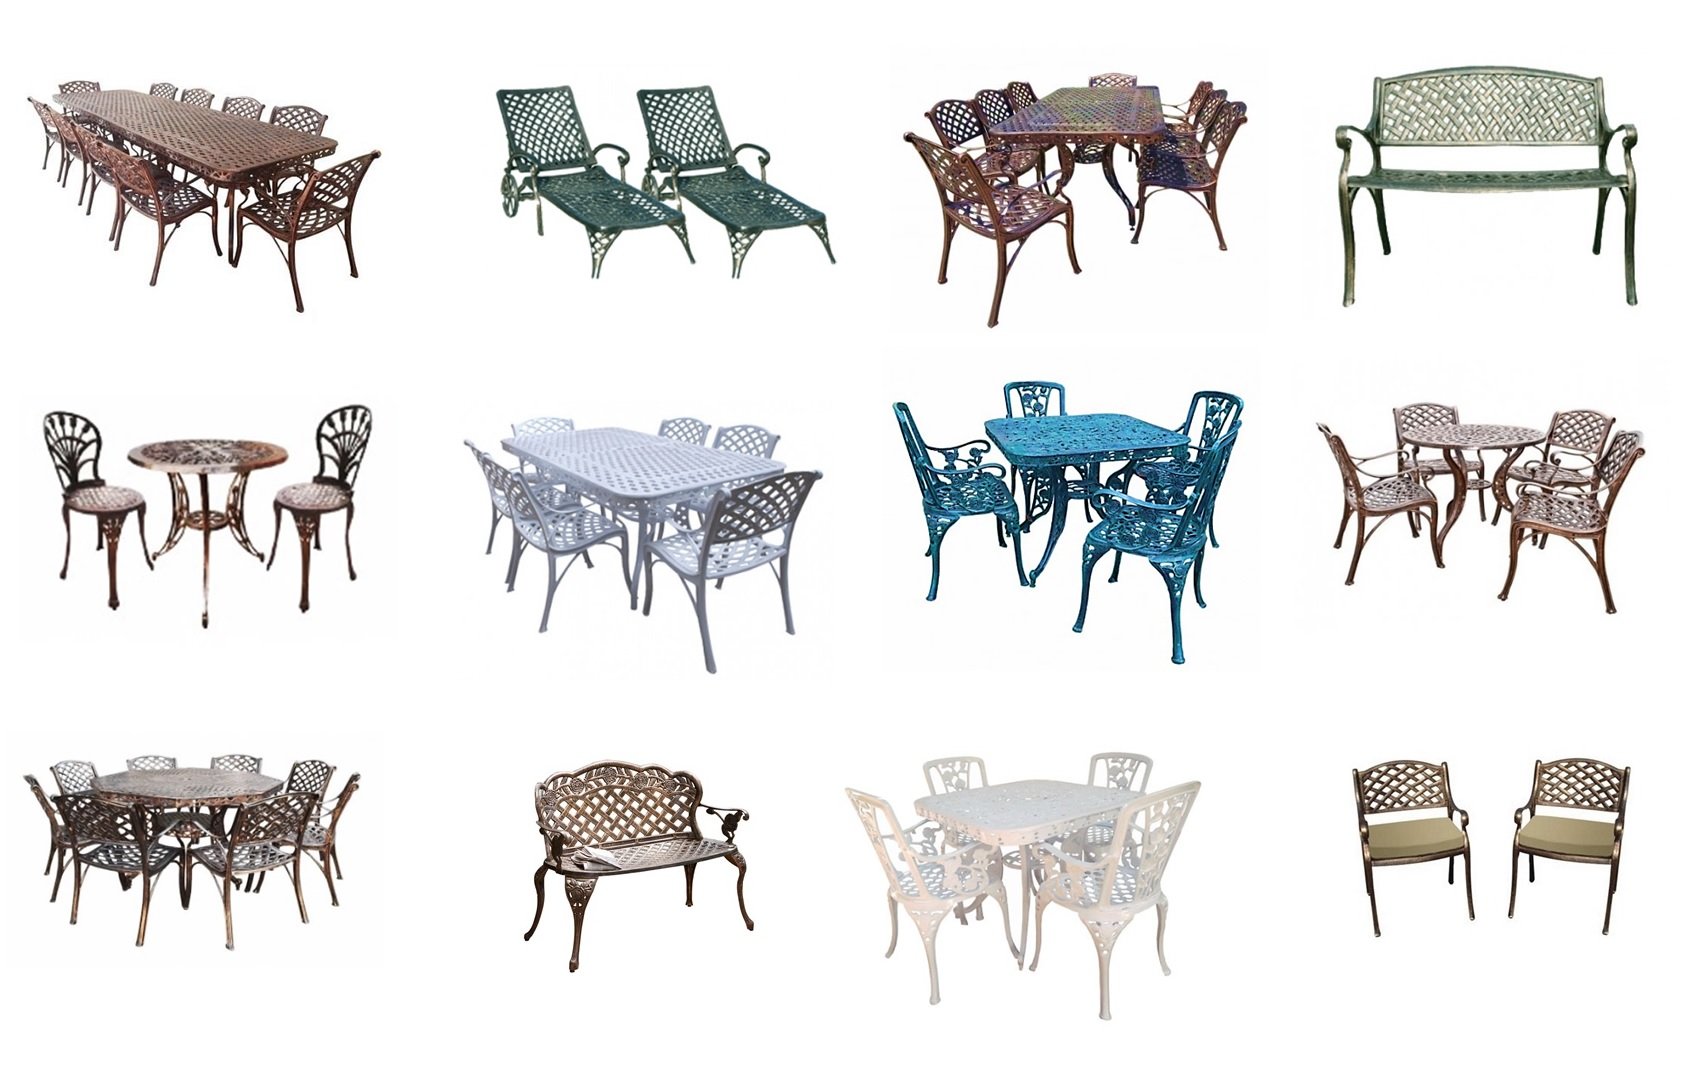 Patio south africa outdoor furniture